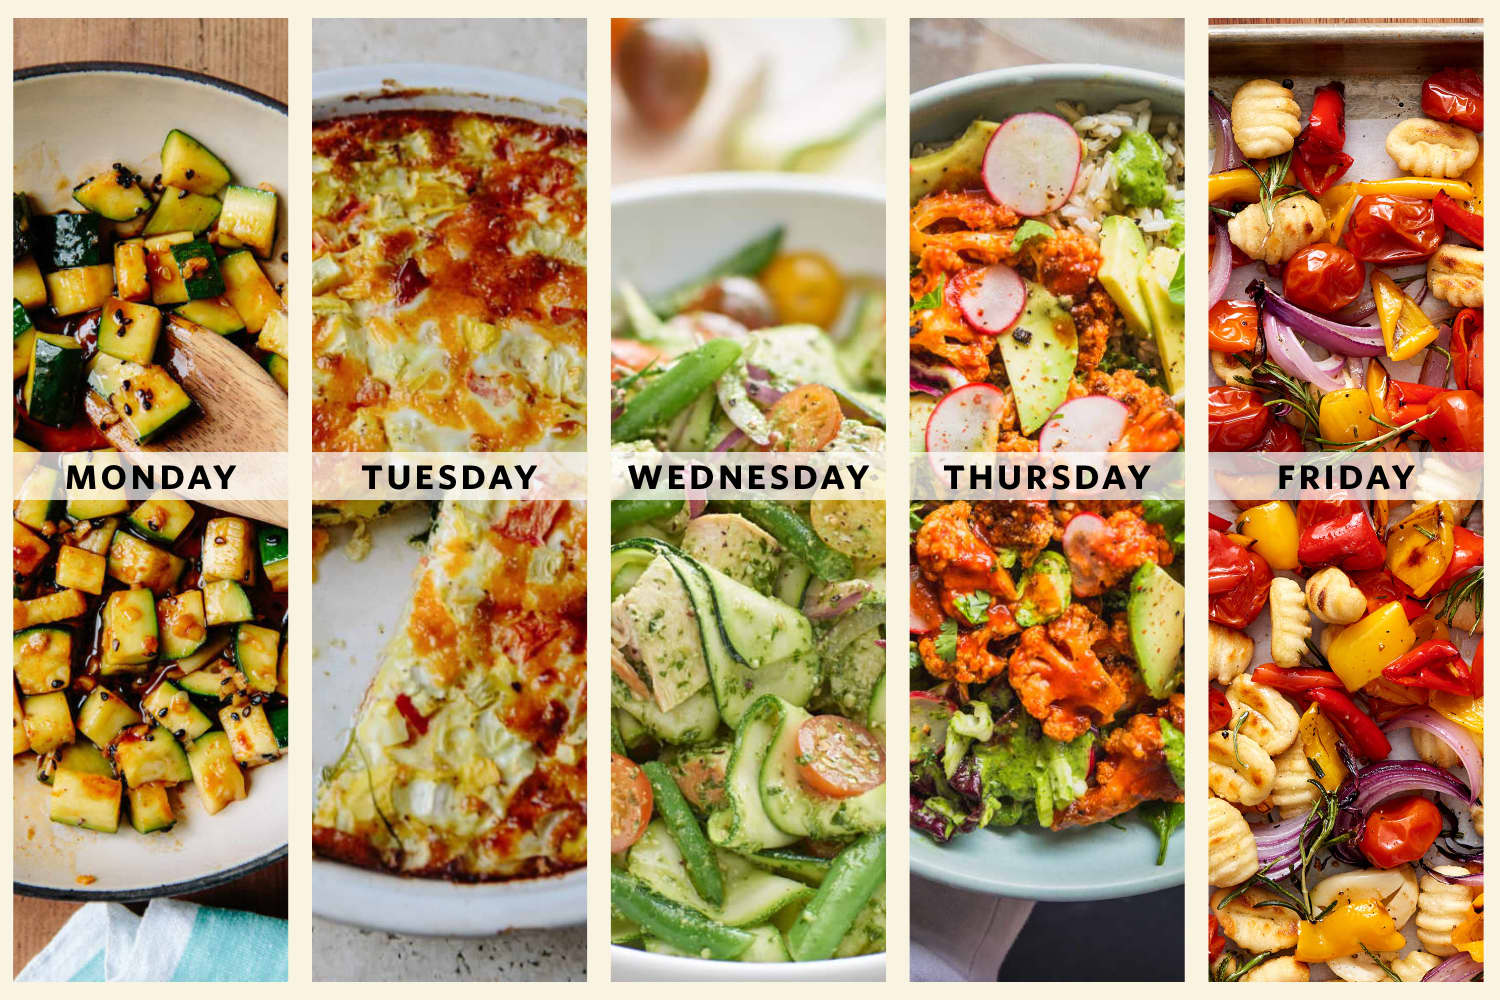 Next Week's Meal Plan: 5 Flexible Vegetable-Driven Dinners for Two